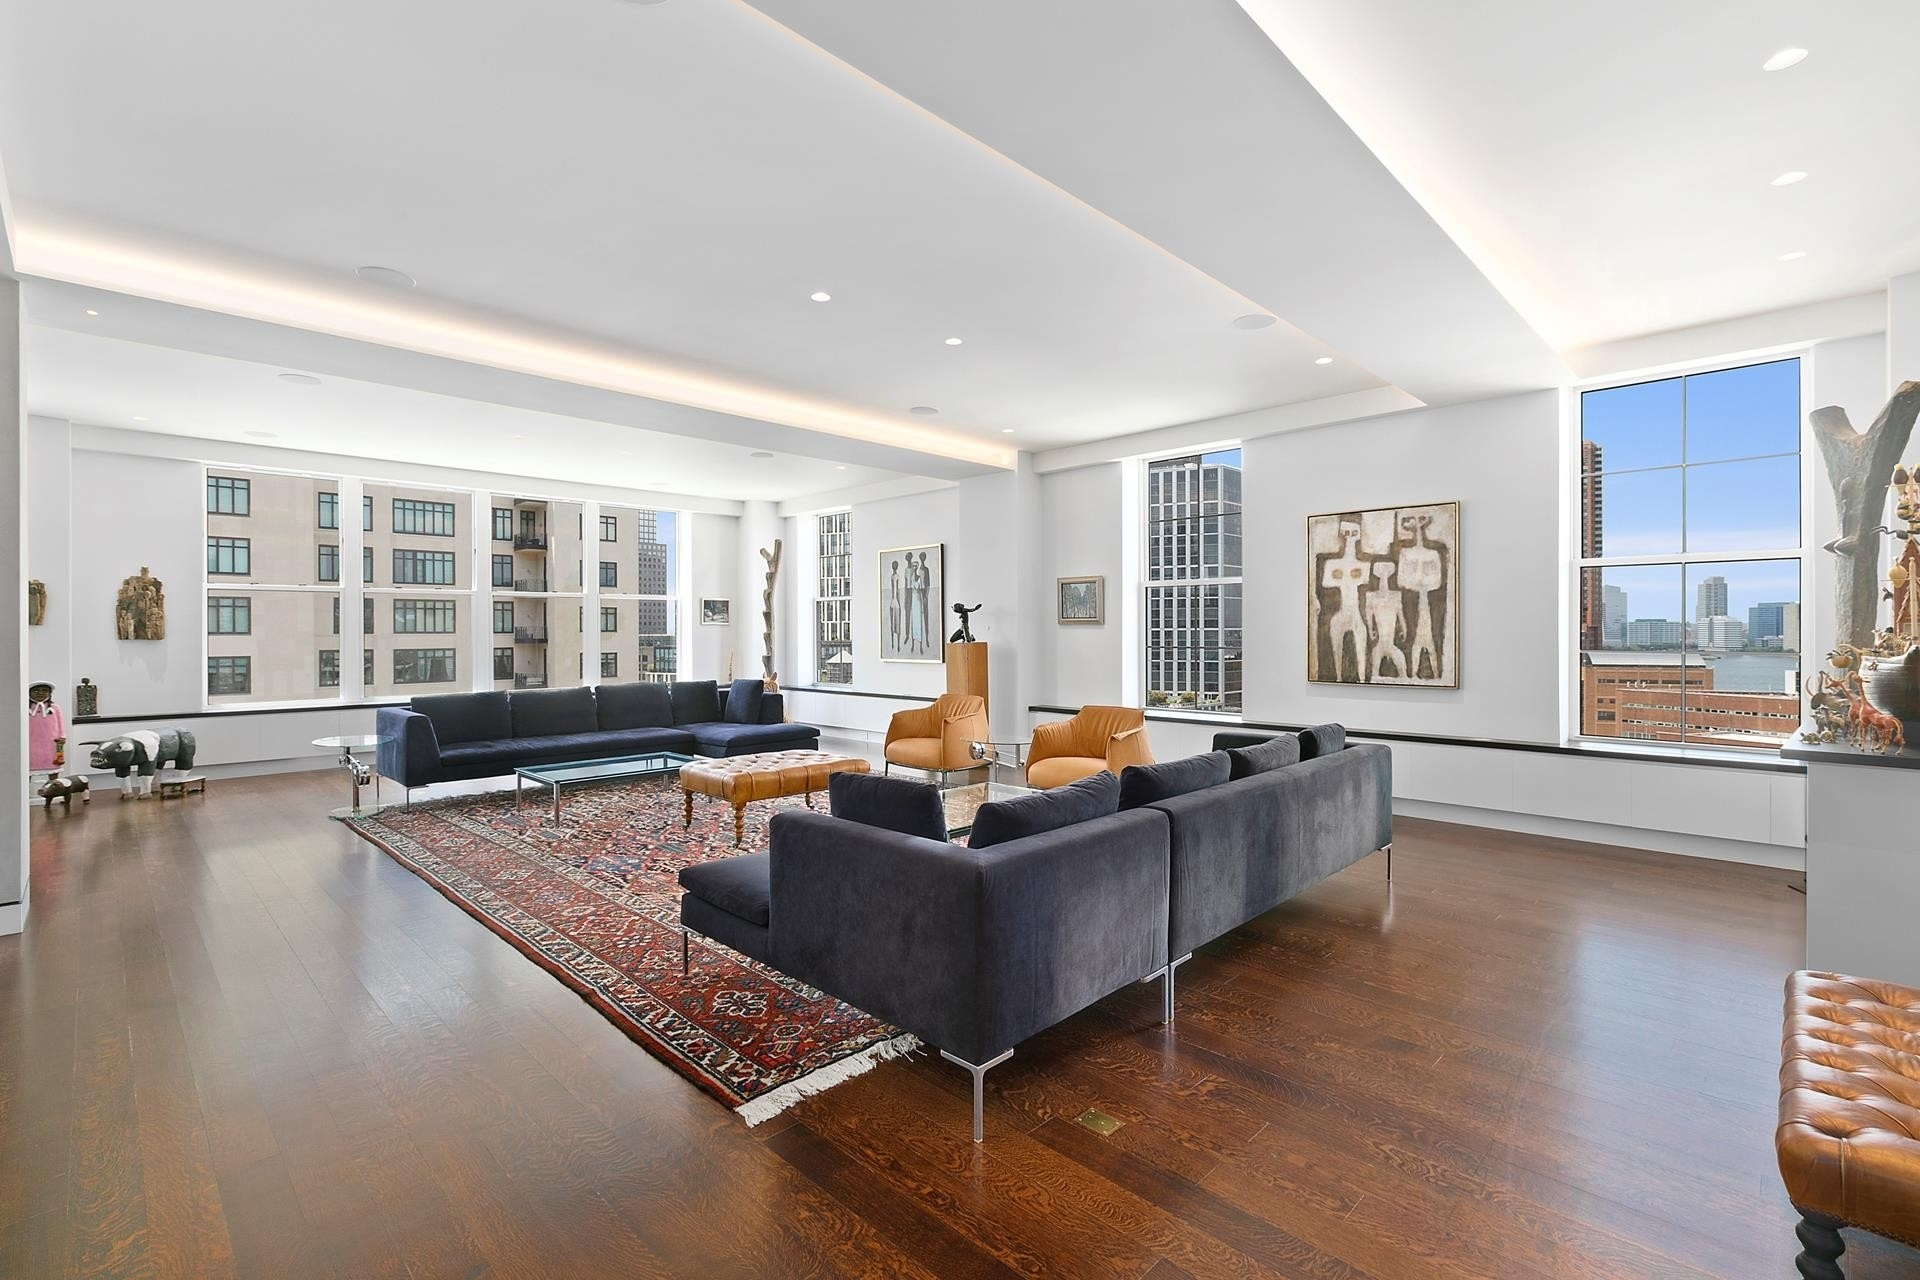 Condominium for Sale at DUANE PARK, 166 Duane St, PHB TriBeCa, New York, NY 10013